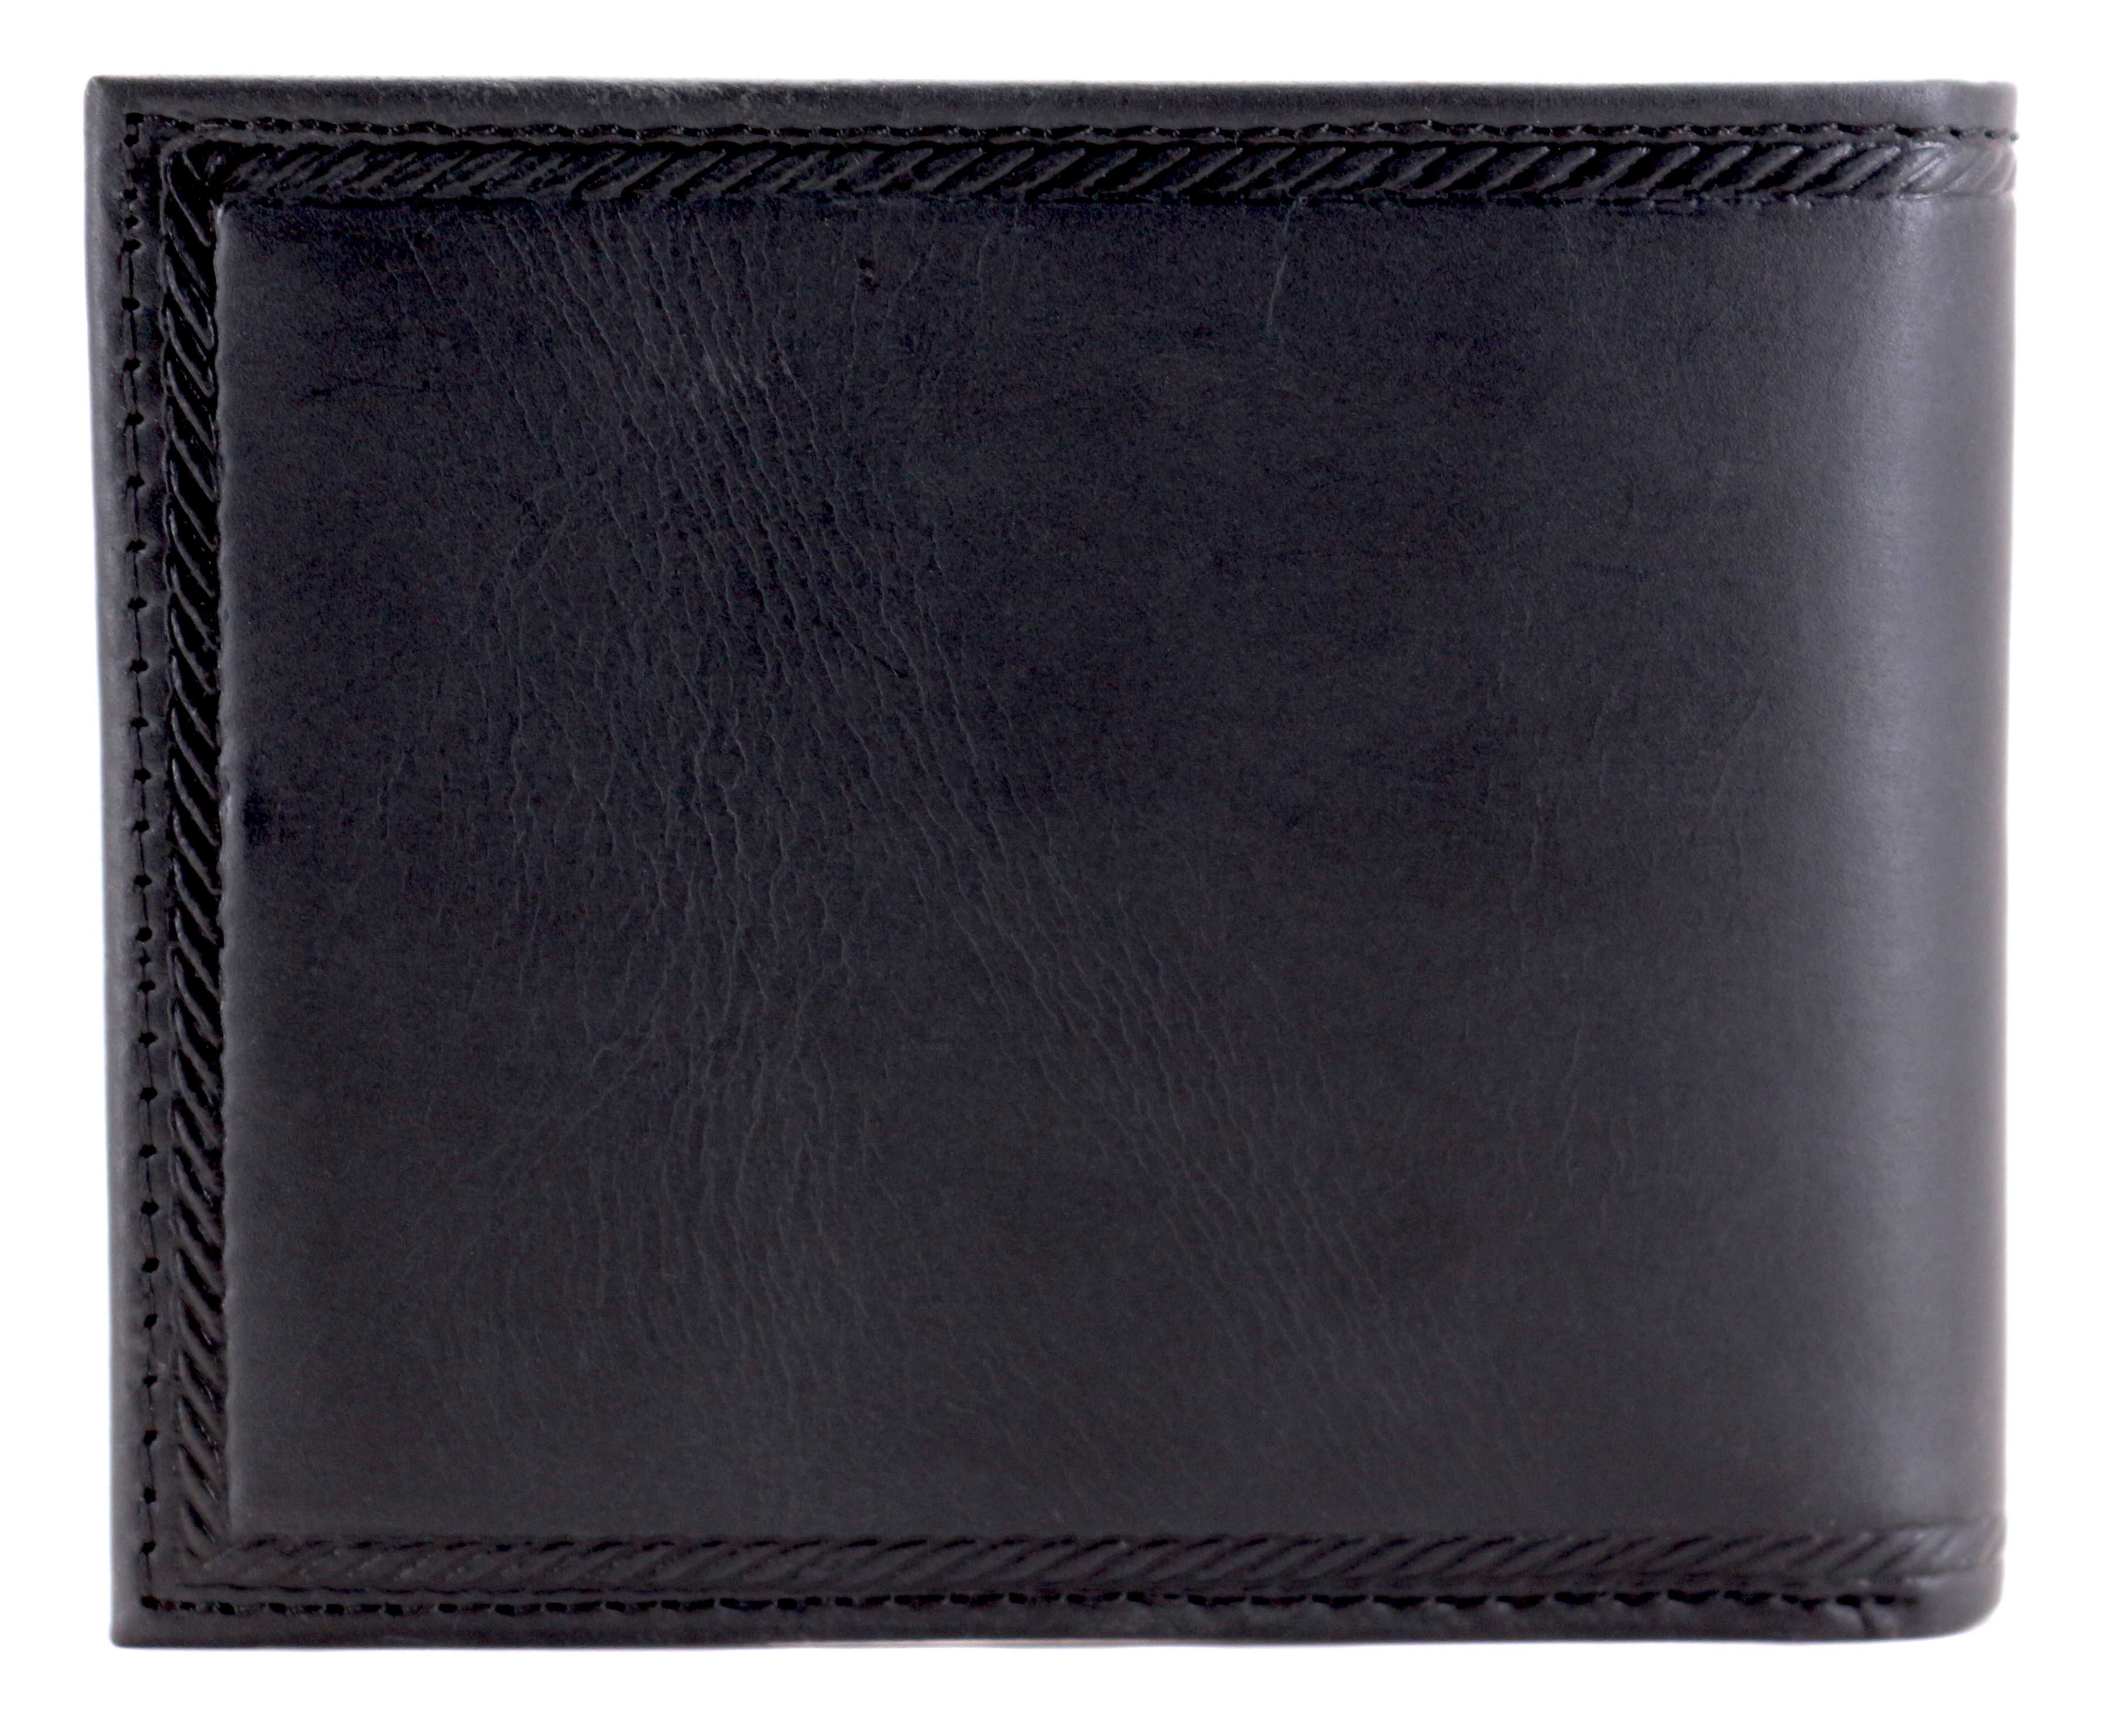 Nautica-Men-039-s-Genuine-Vintage-Leather-Credit-Card-ID-Billfold-Passcase-Wallet thumbnail 3